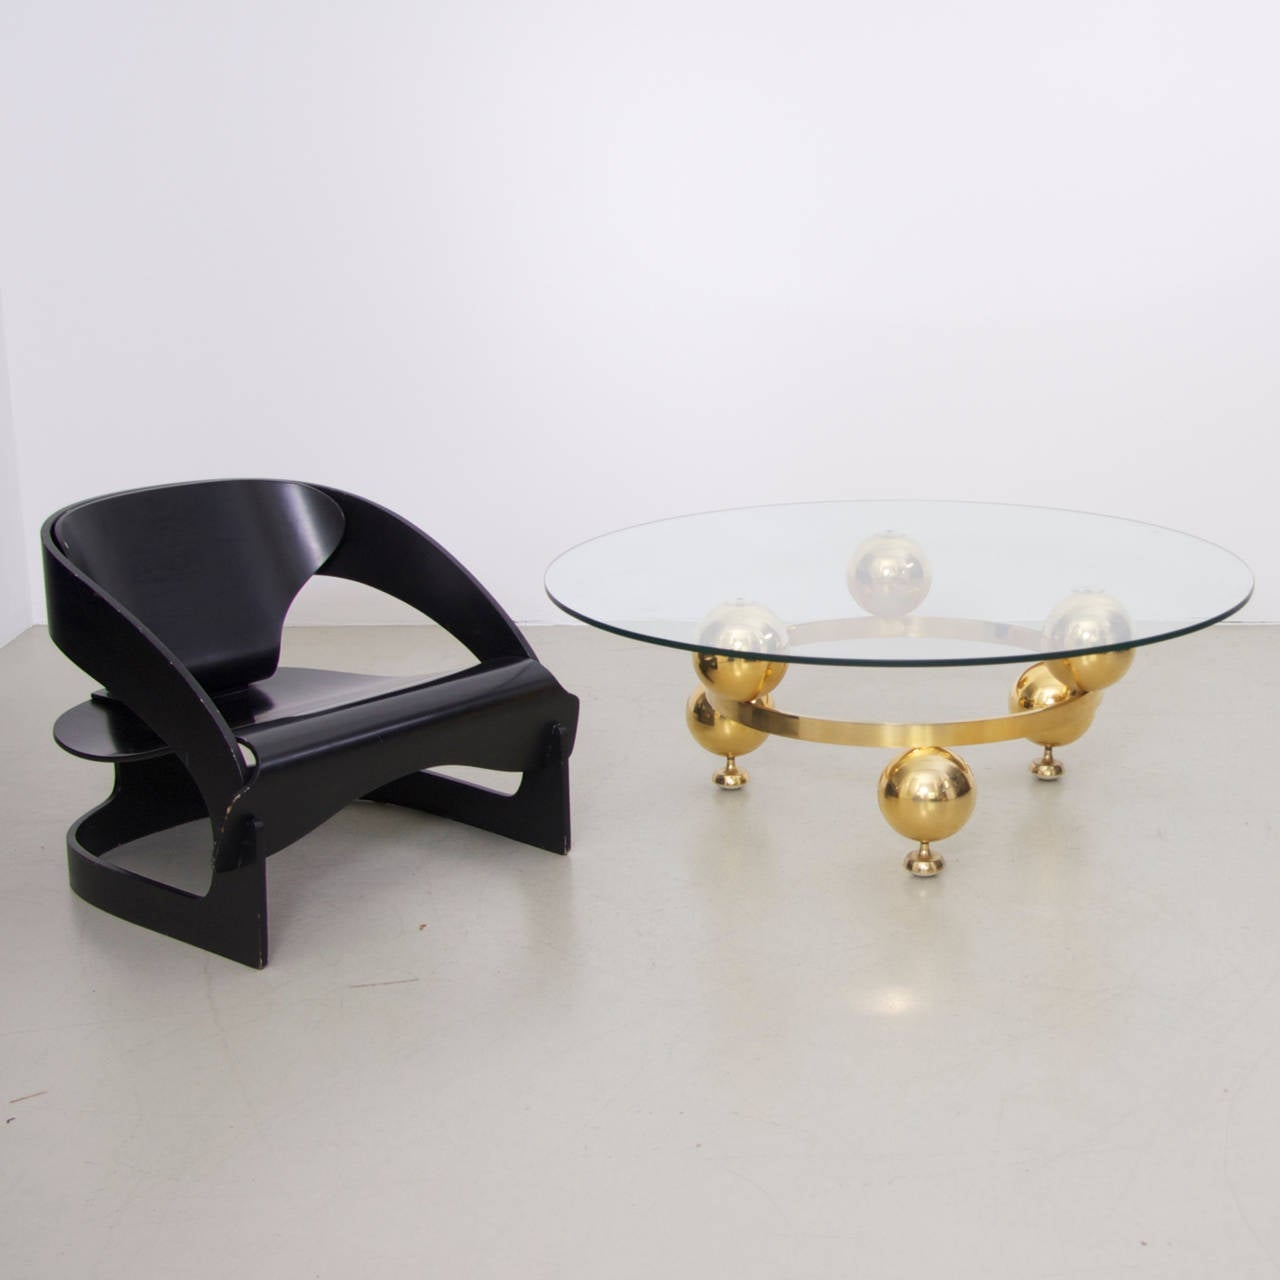 Round brass sputnik coffee table with glass top for sale at 1stdibs Brass round coffee table